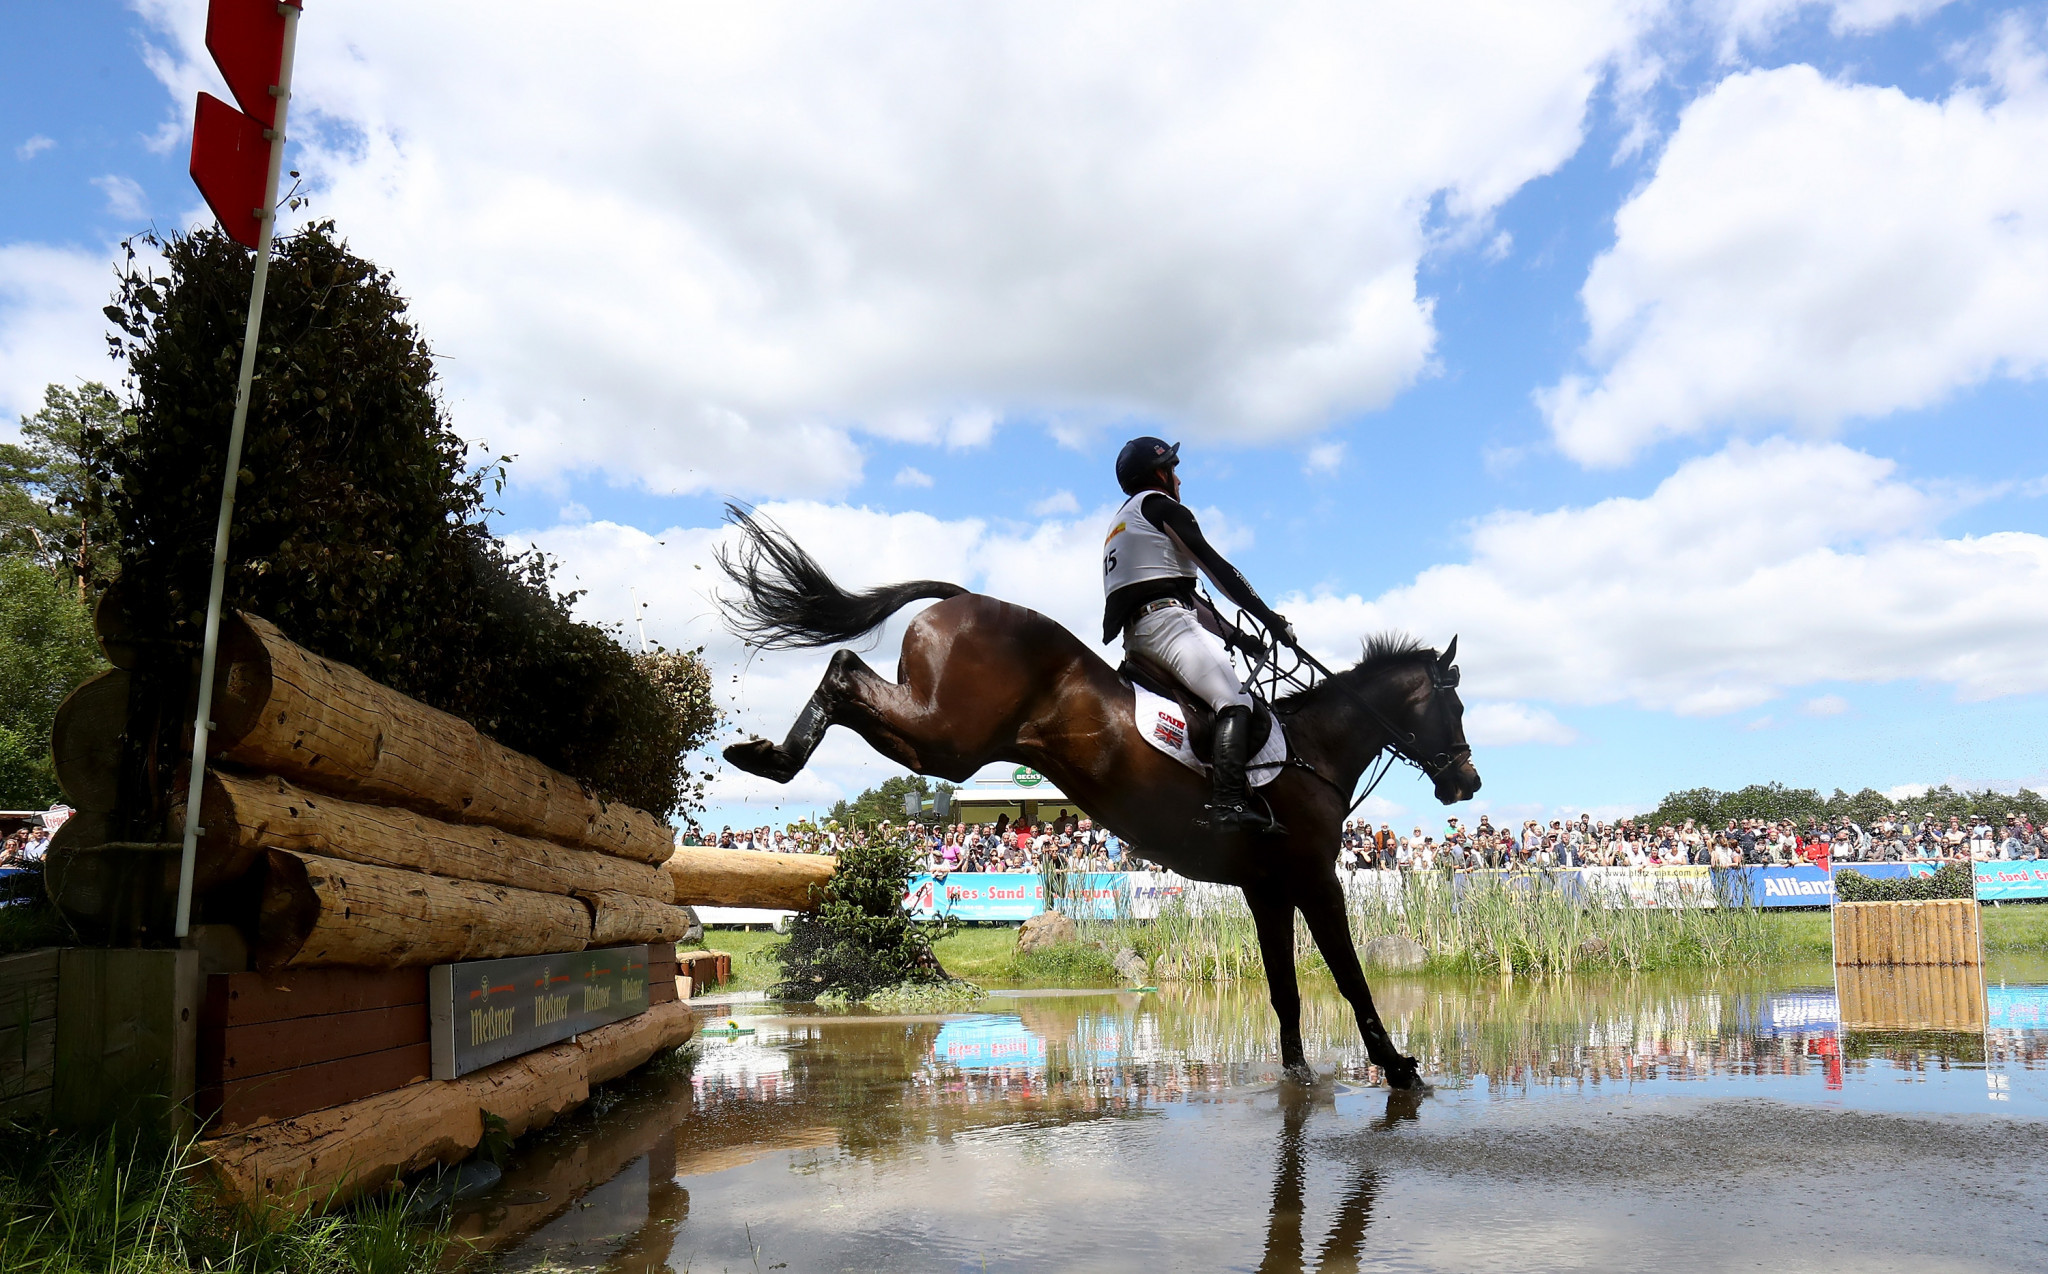 Townend takes over lead at Burghley Horse Trials